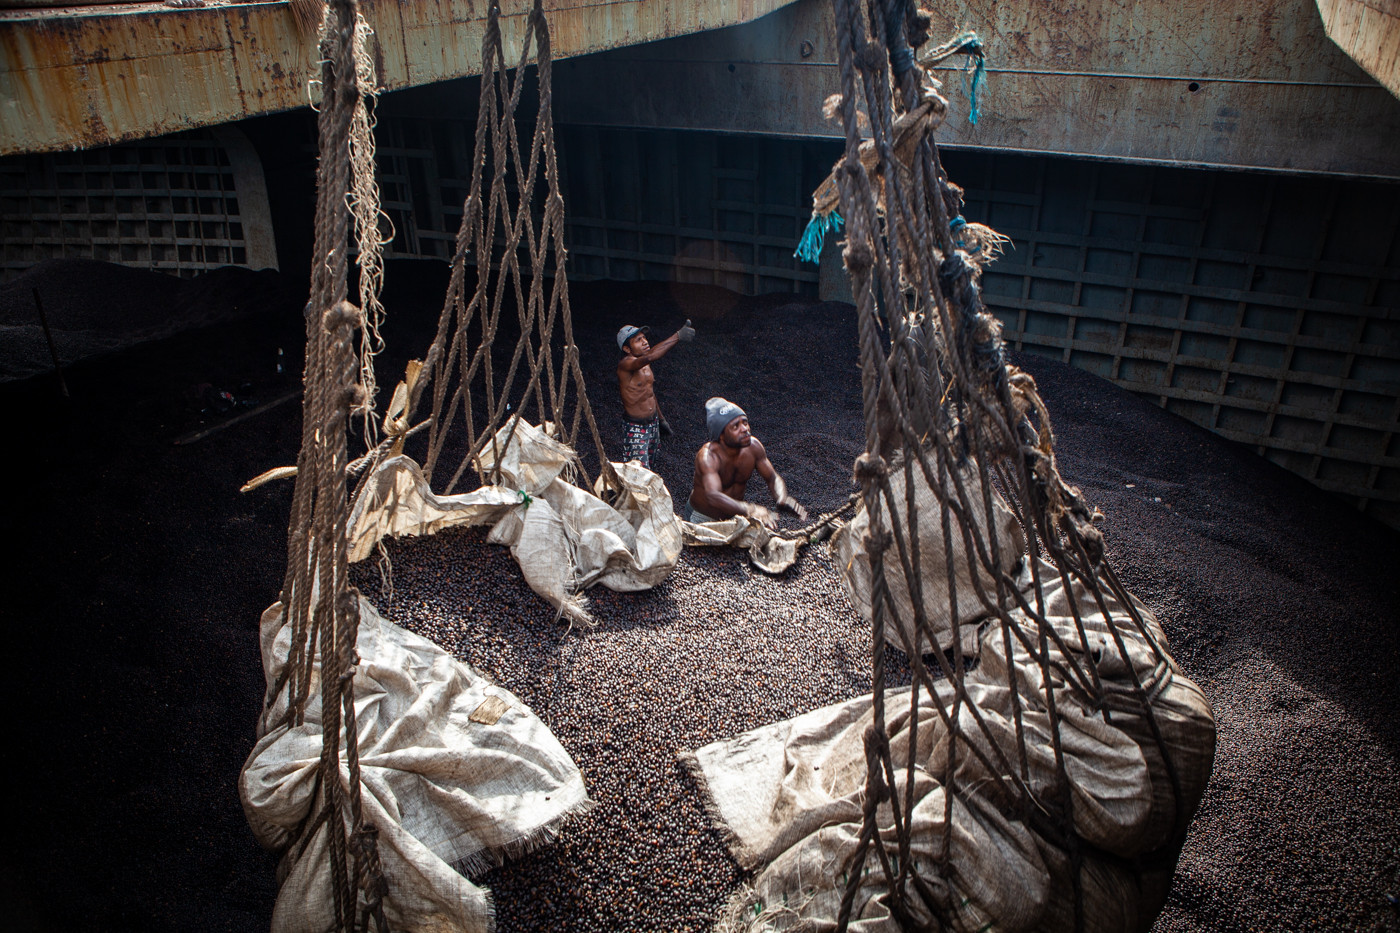 In all-consuming heat and treacherous conditions, two workers load thousands of pounds of palm nuts (the raw form of palm oil) into the multi-ton ship hull.  Sans safety gear, they are covered in pesticide residue and the greasy (itchy) oil that coats the palm nuts.